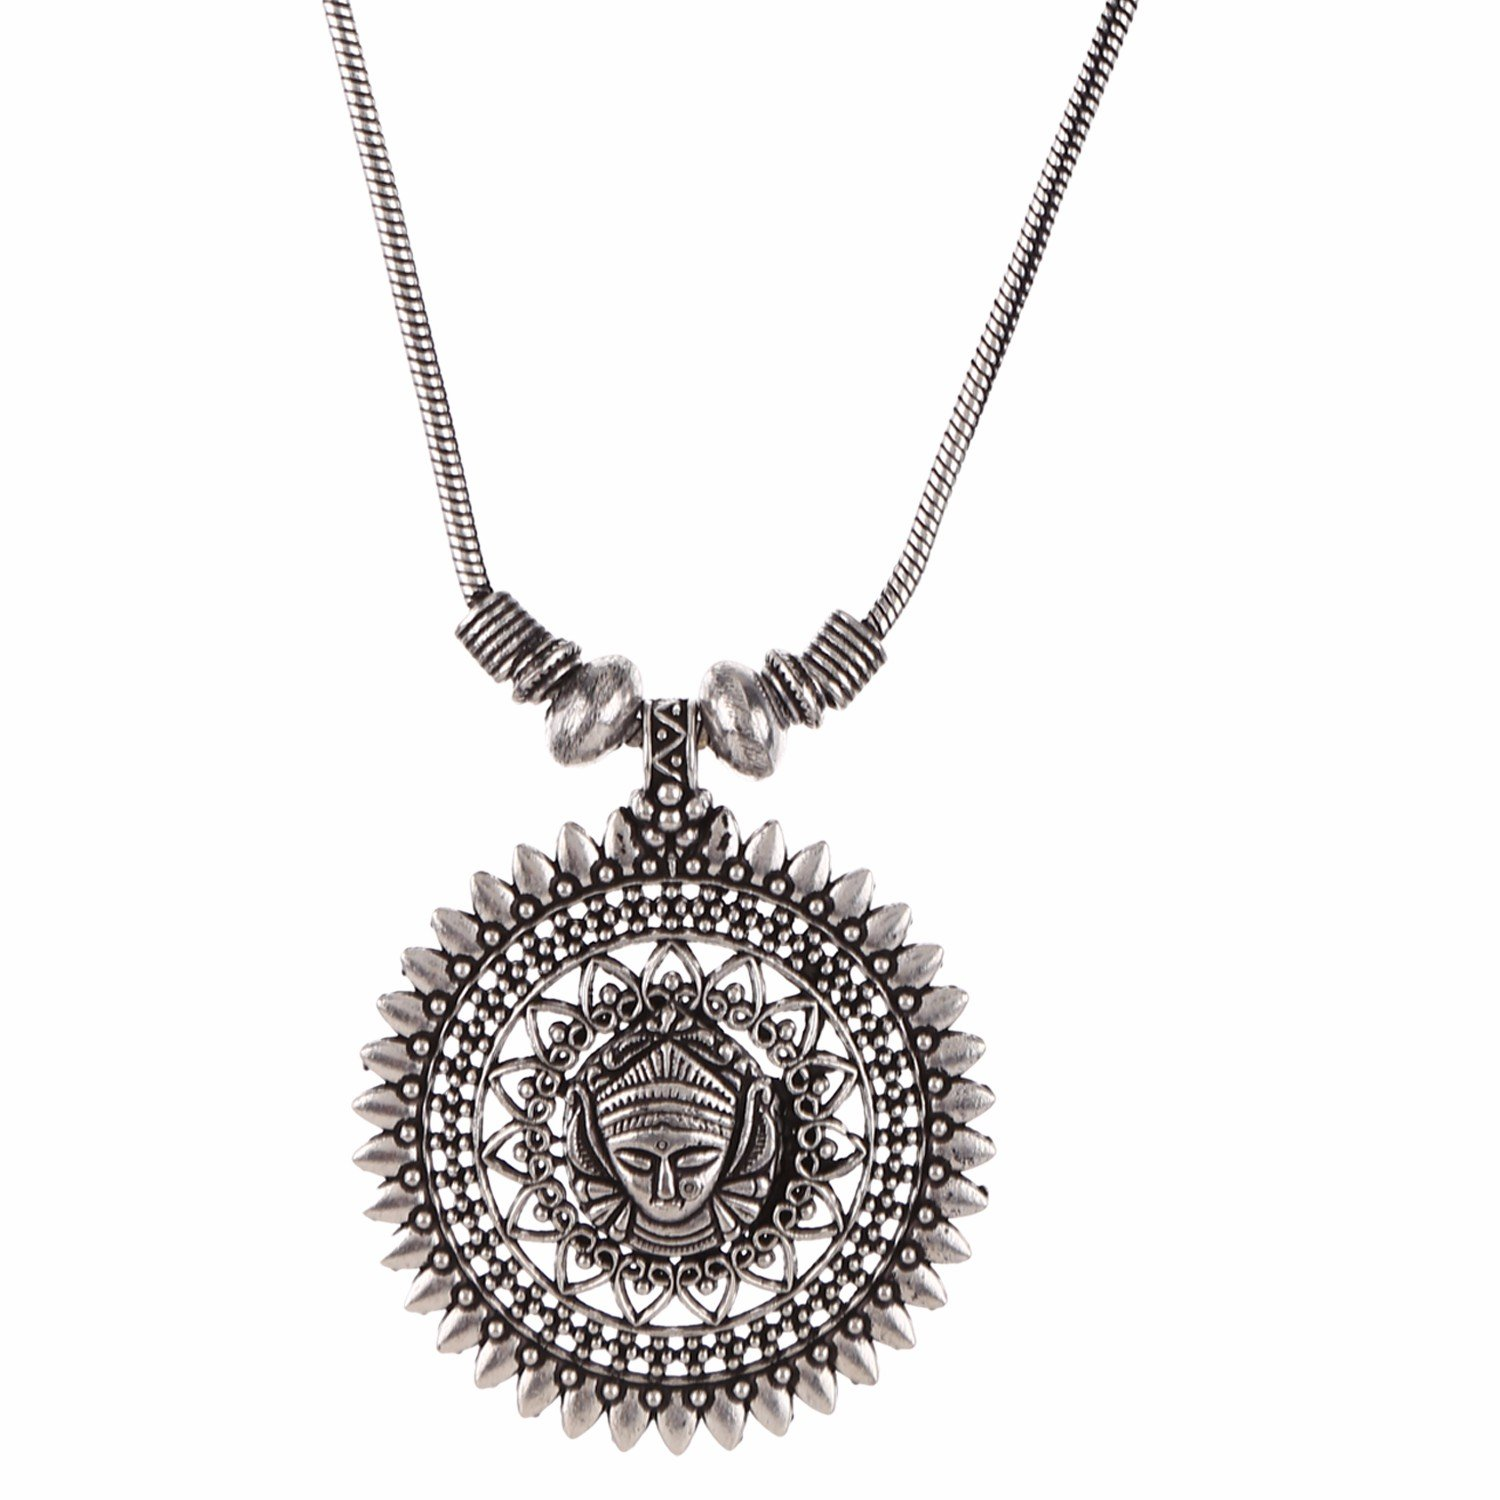 Efulgenz Indian Vintage Retro Ethnic Gypsy Oxidized Tone Boho Necklace Jewellery for Girls and Women Gift for Her